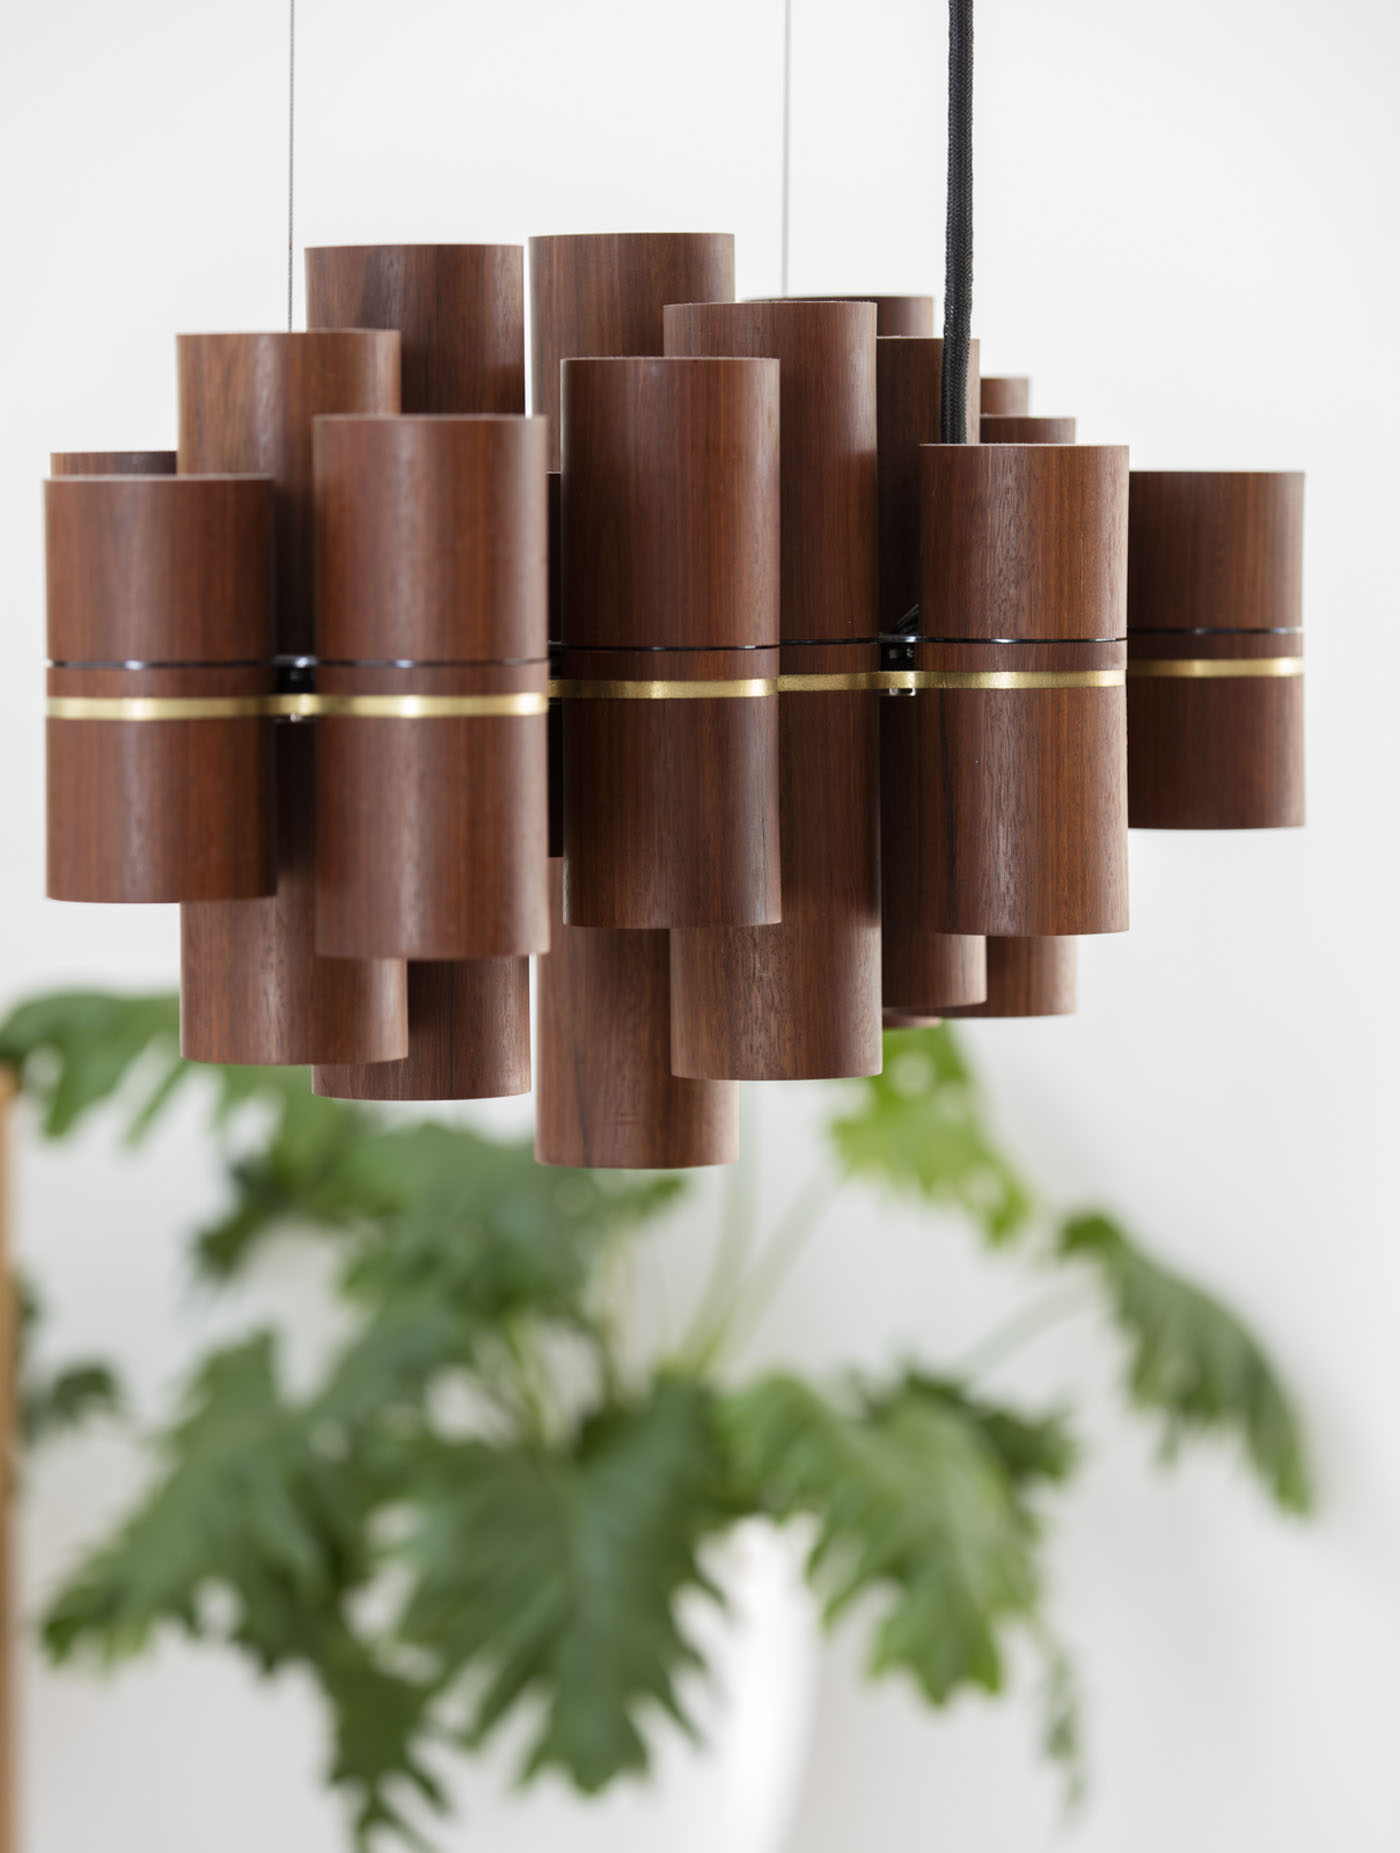 Dover Heights Pendants by award winning Sydney firm Sam Crawford Architects. Timber column offcuts are recycled into modern pendant light.